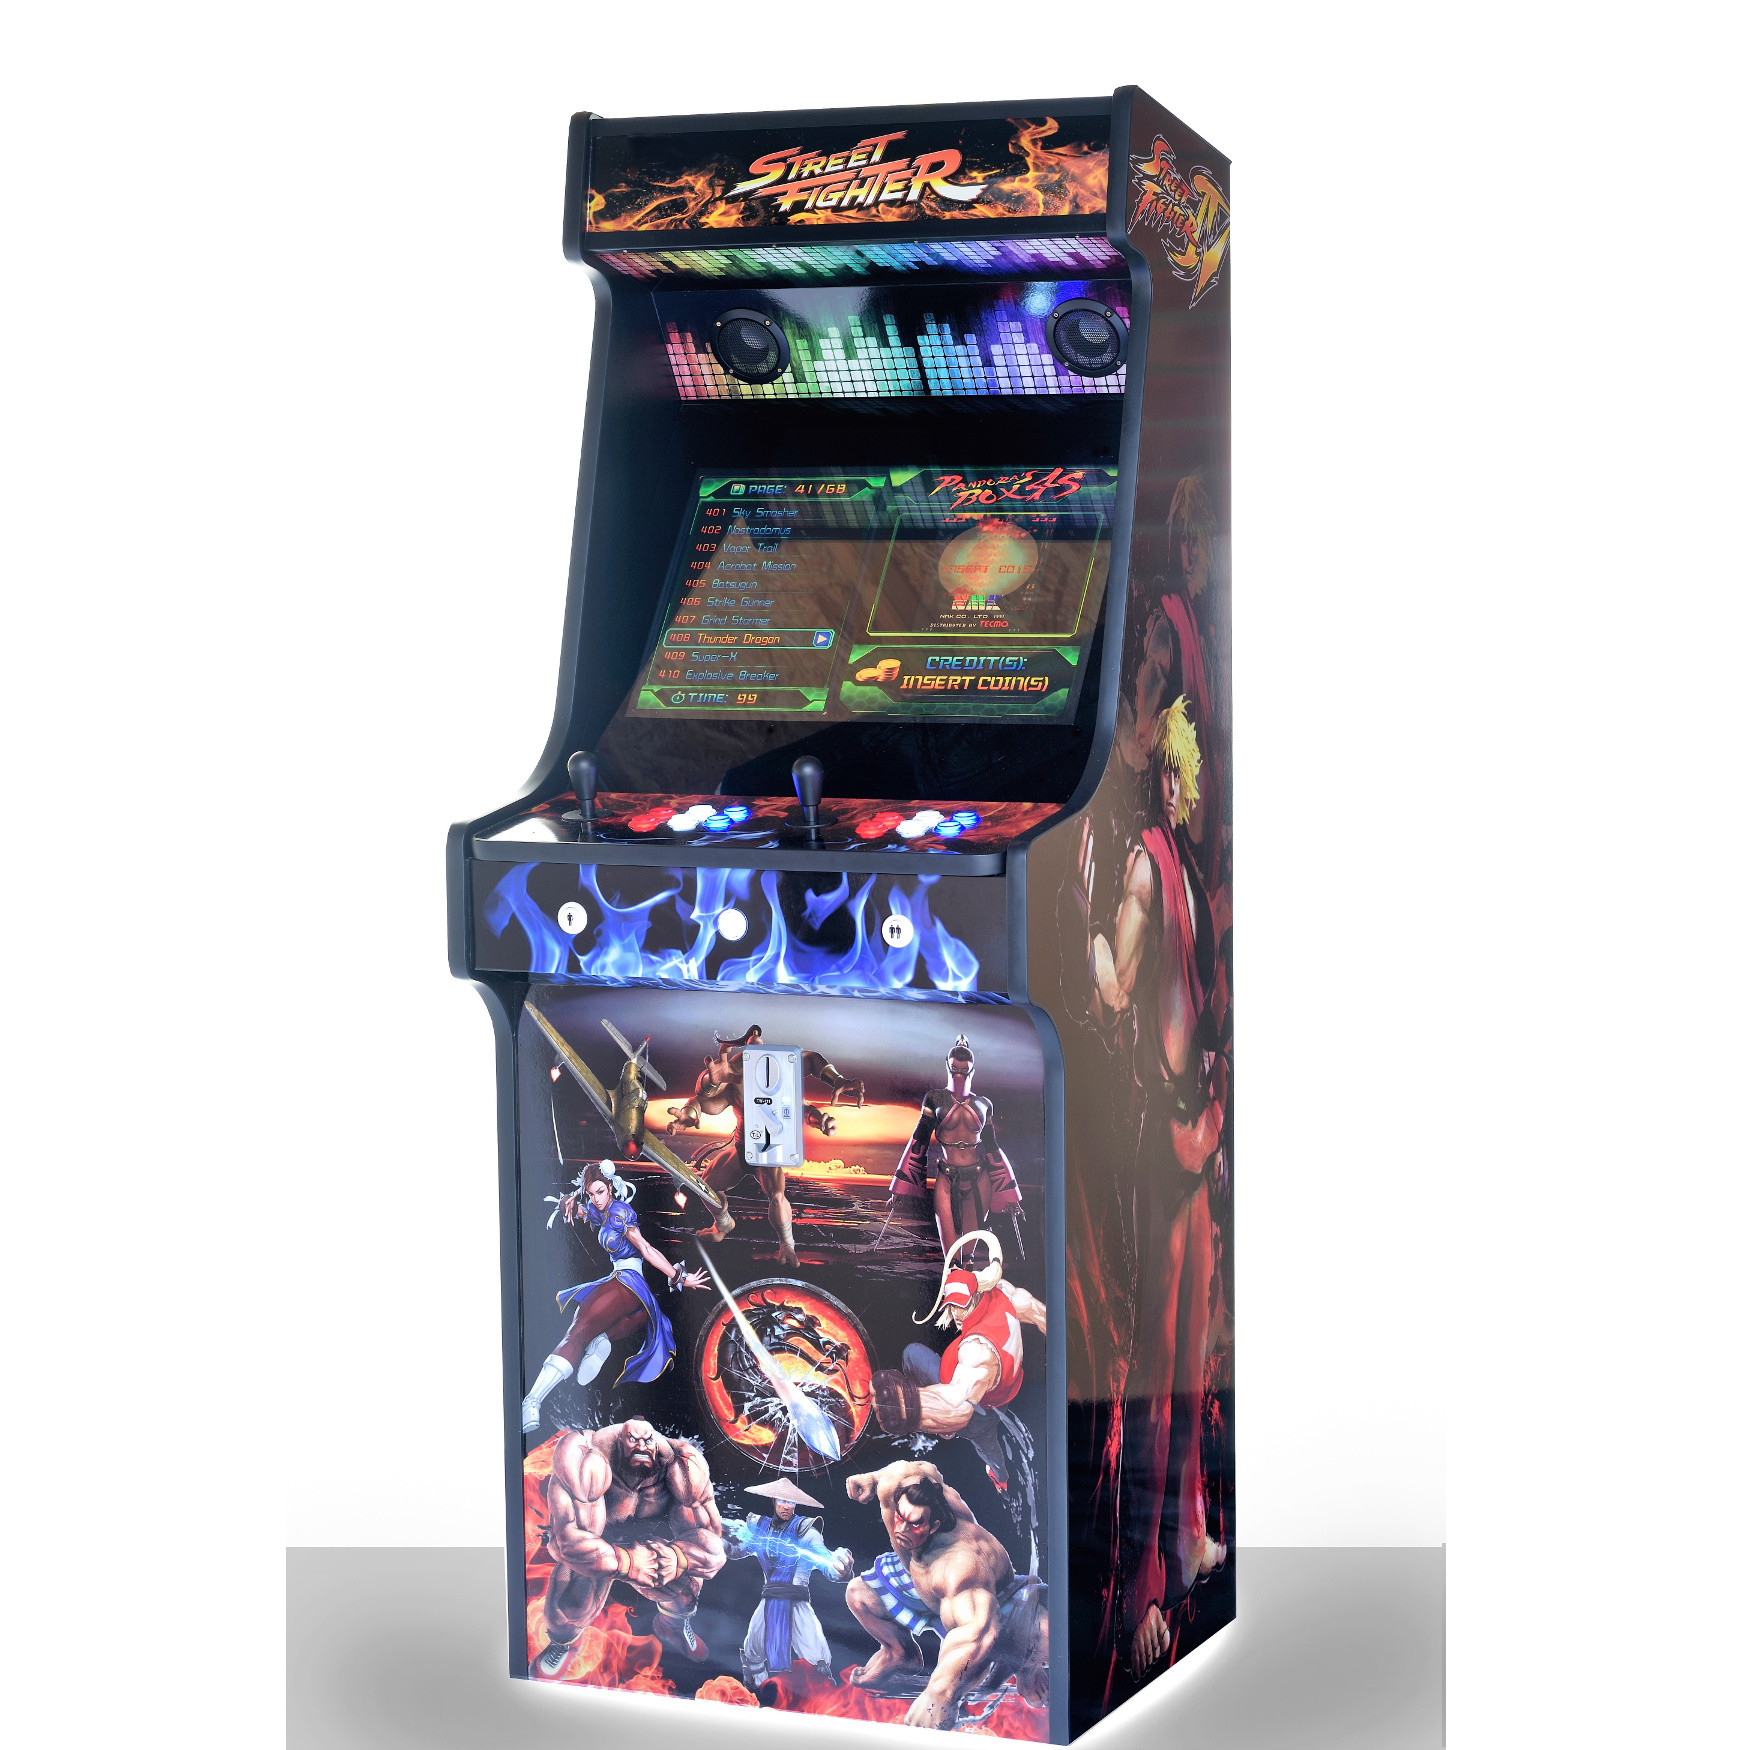 Classic-Upright-Arcade-Machine-Street-Fighter-Theme-With illuminated Buttons and Coin Slot - right